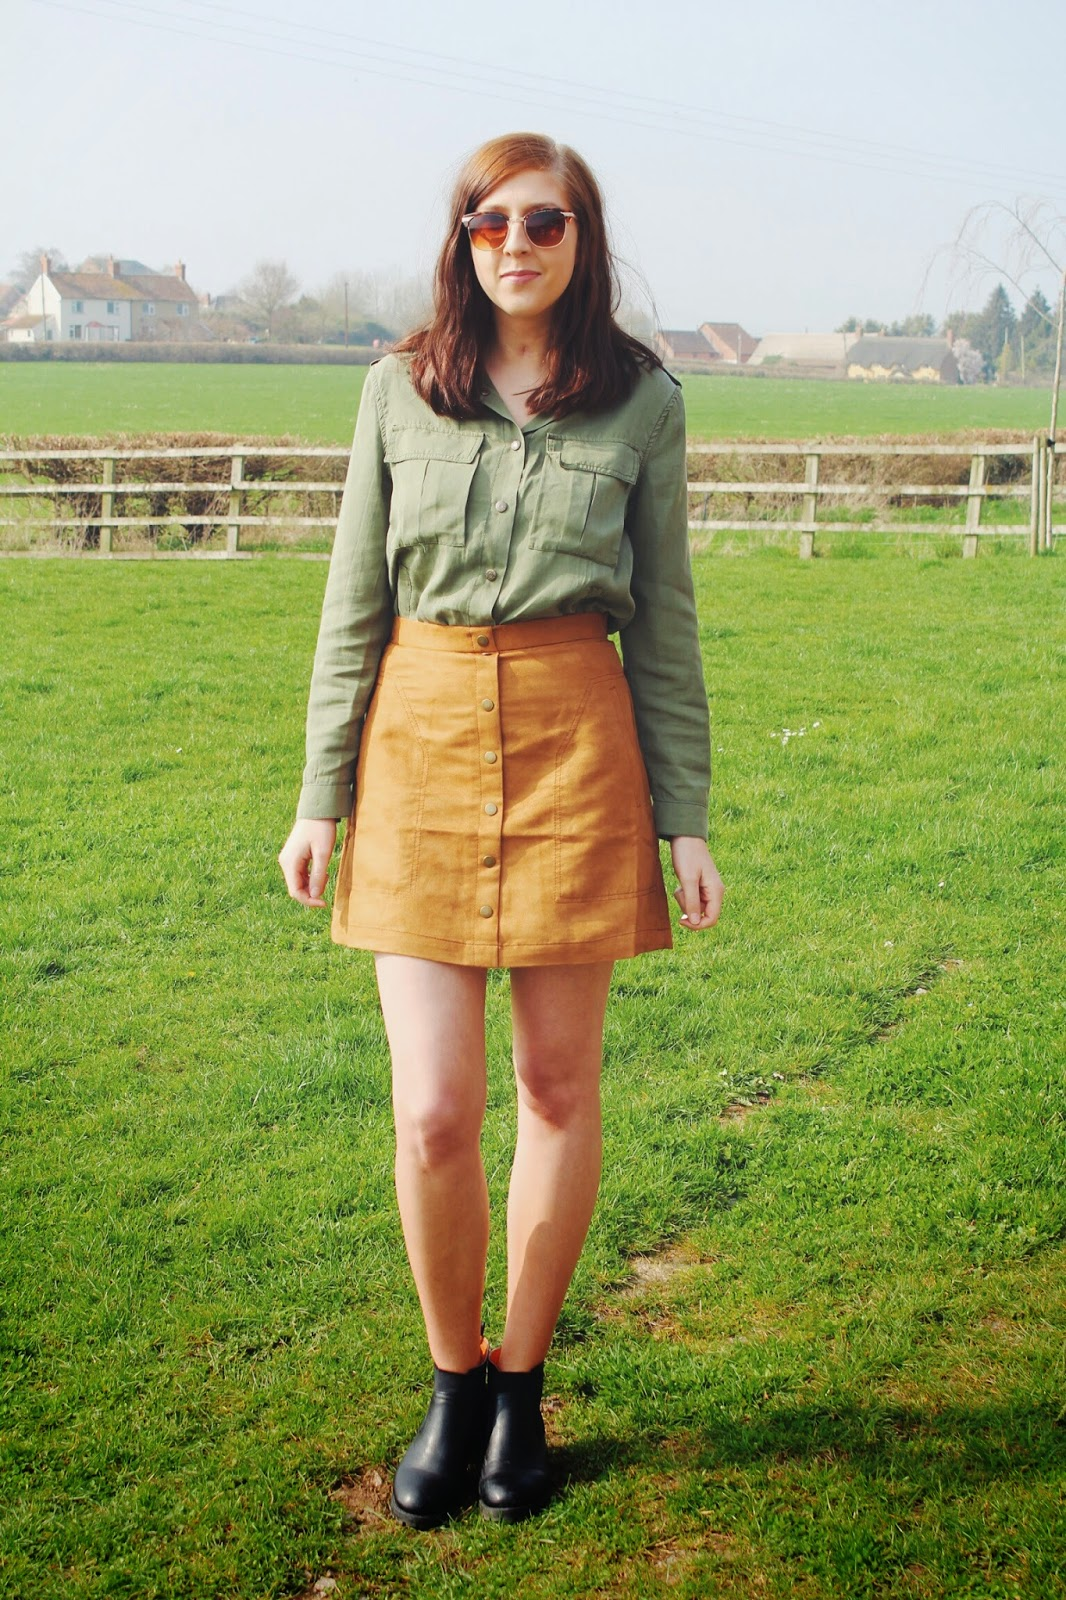 asseenonme, asos, primark, H&M, suede, military, khaki, bloggers, halcyon velvet, fblogger, wiw, whatimwearing, ootd, outfitoftheday, lotd, lookoftheday, fashion, fashionbloggers, fashionblogger